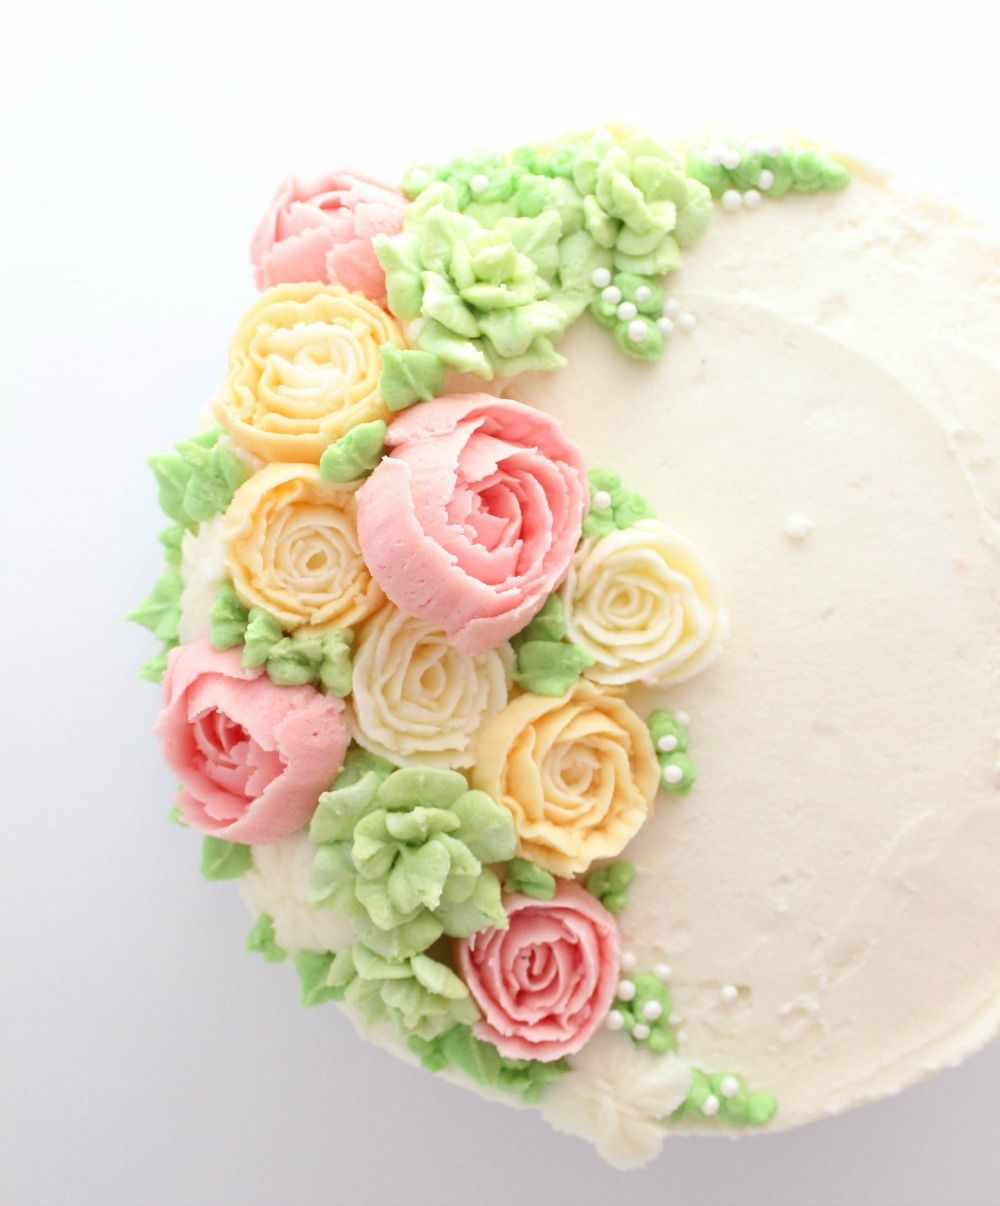 Cake Decorating How To Make Roses : Buttercream Flower Cake Buttercream flowers, Decorating ...